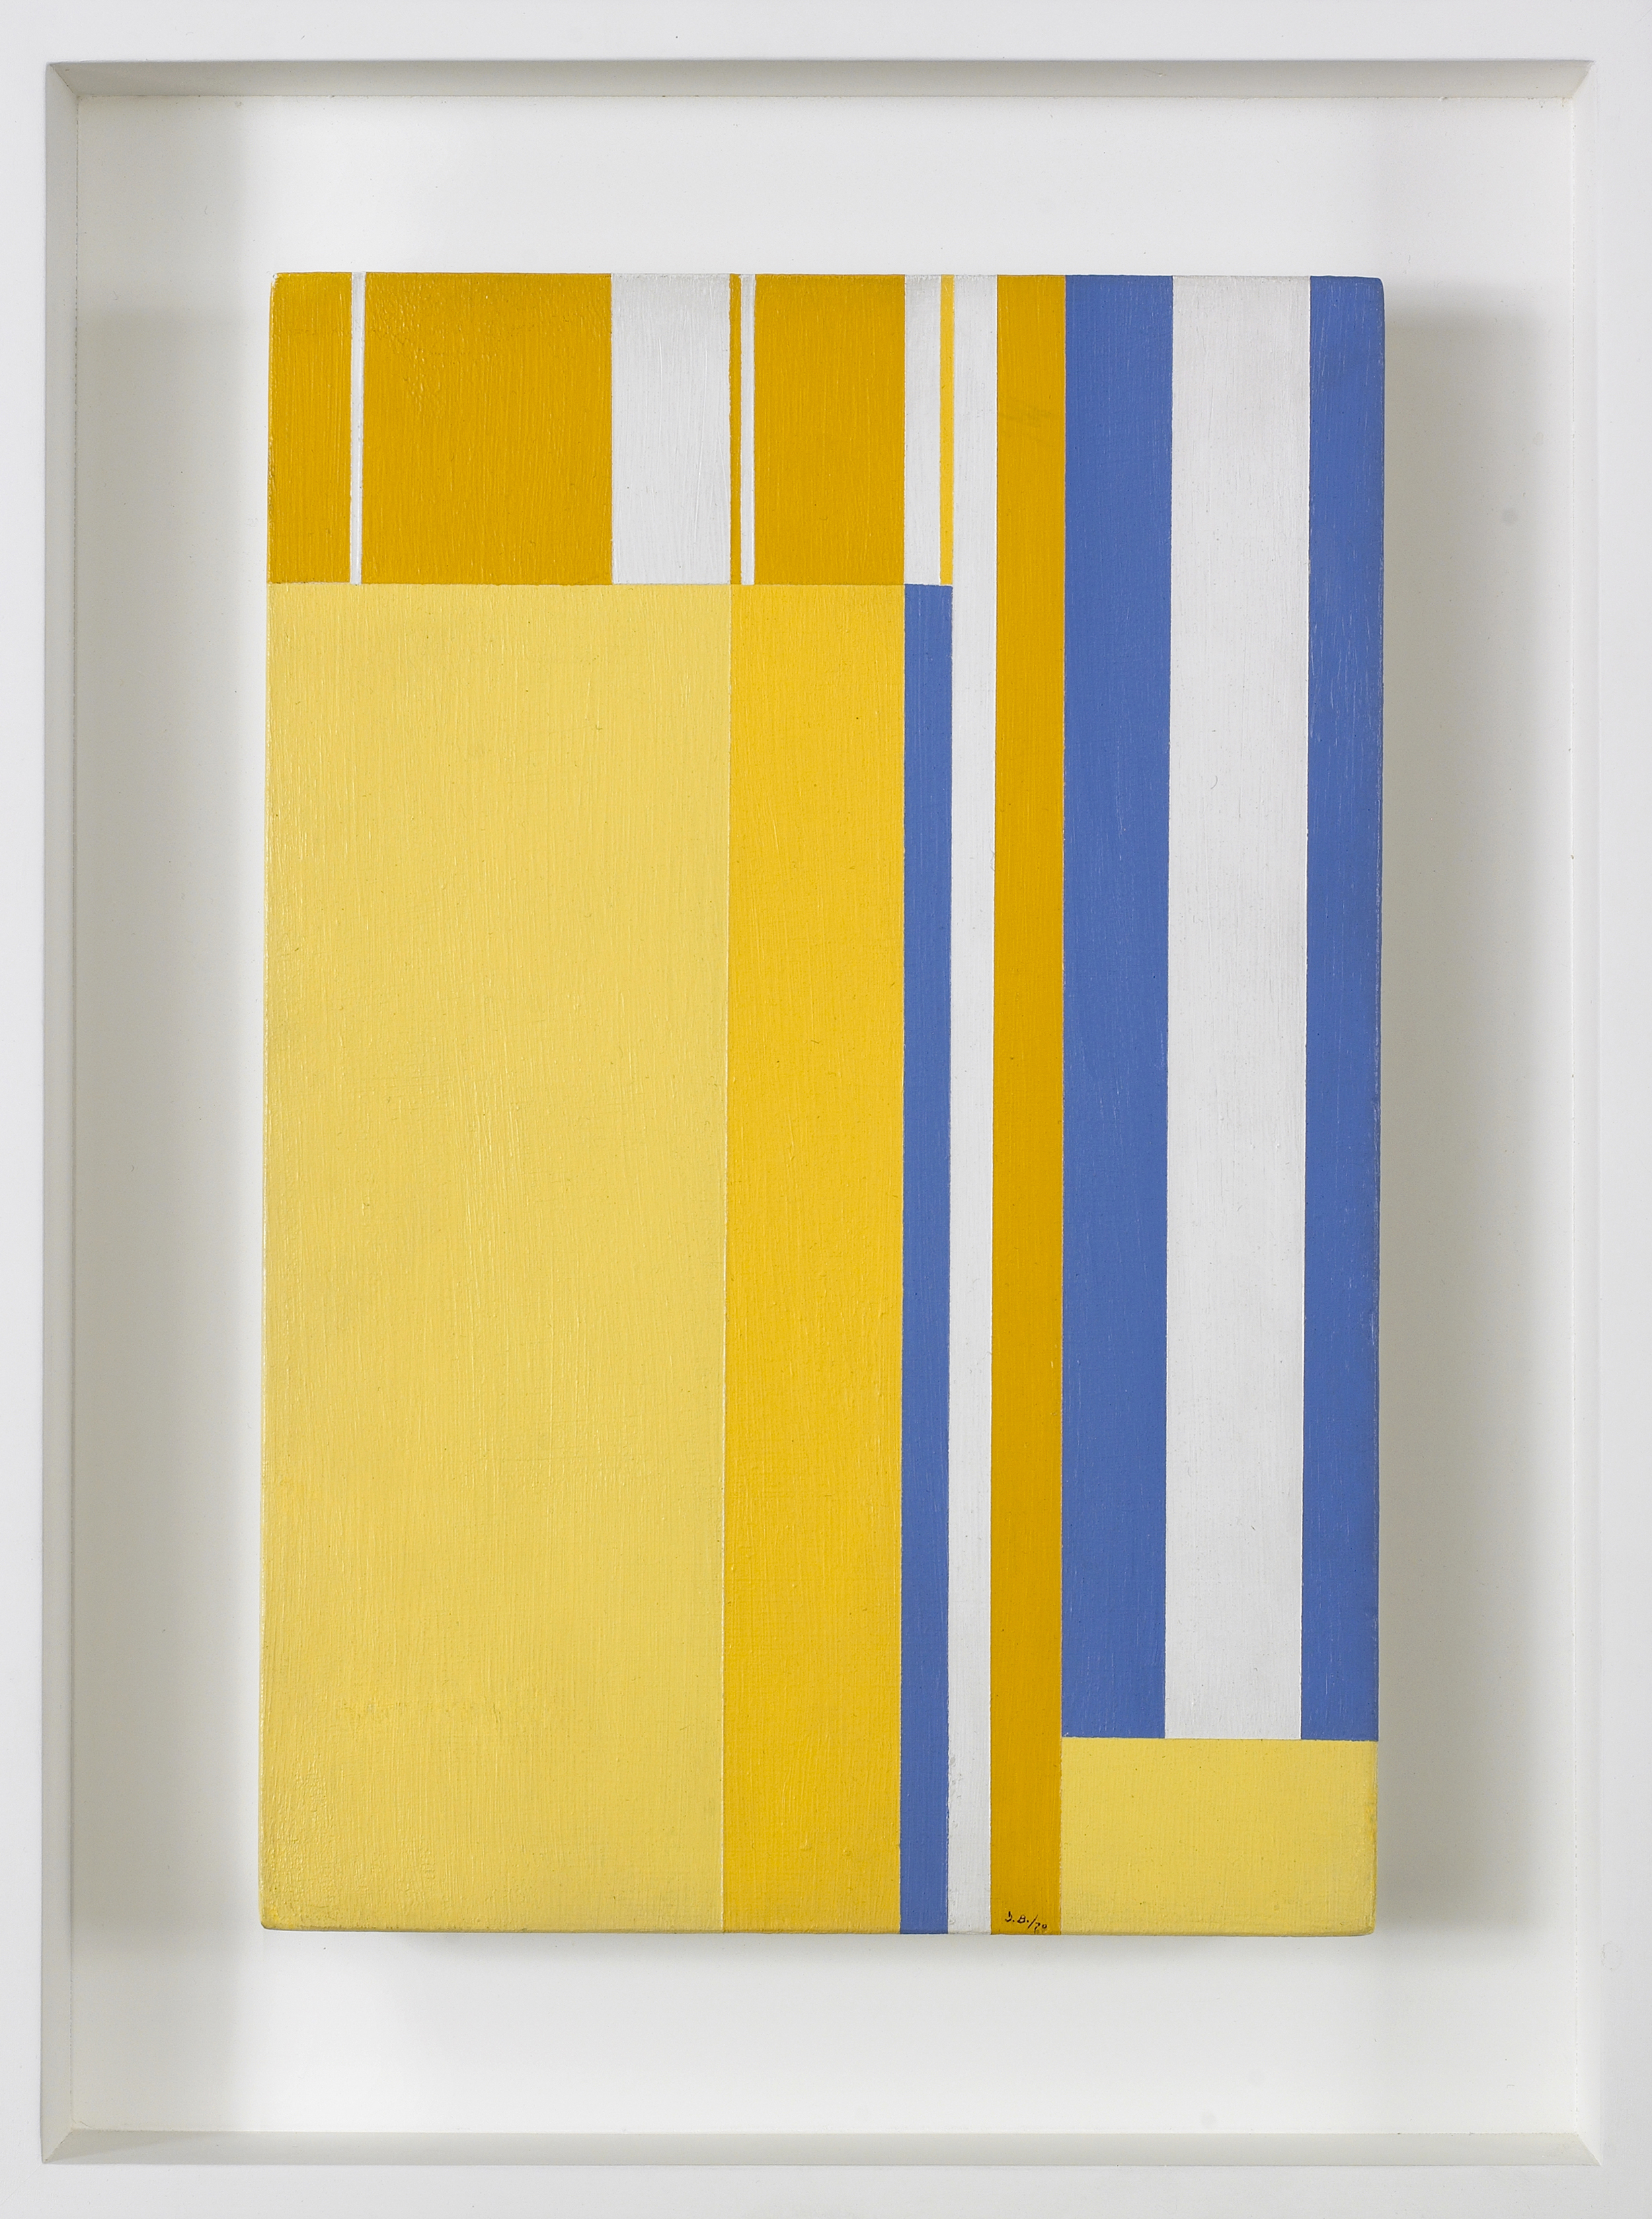 Three Yellows Vertical,   1970, Acrylic on wood panel, 12 x 8 inches